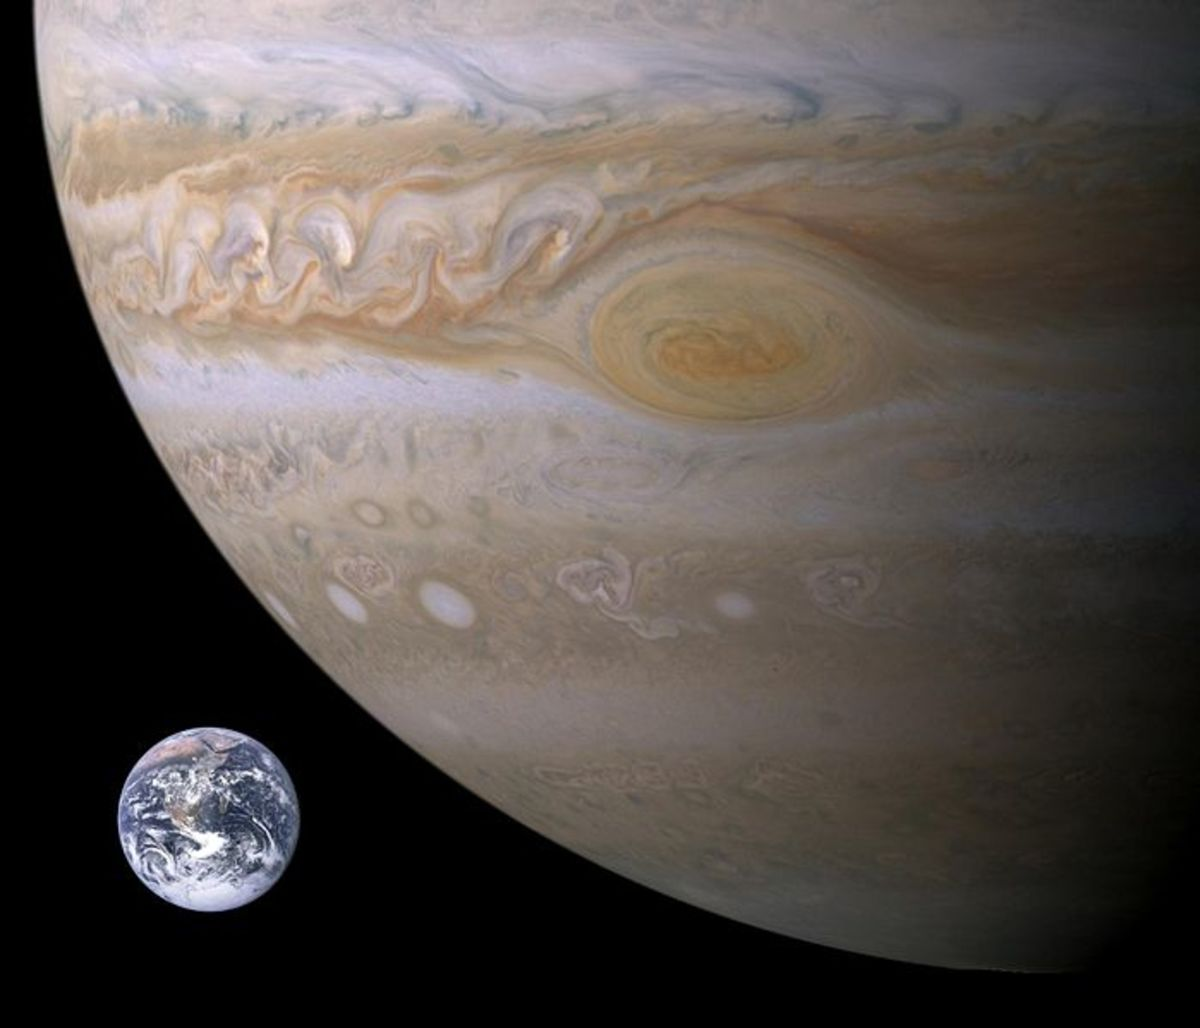 The Planet Jupiter Facts: Compare Size to All Other Planets